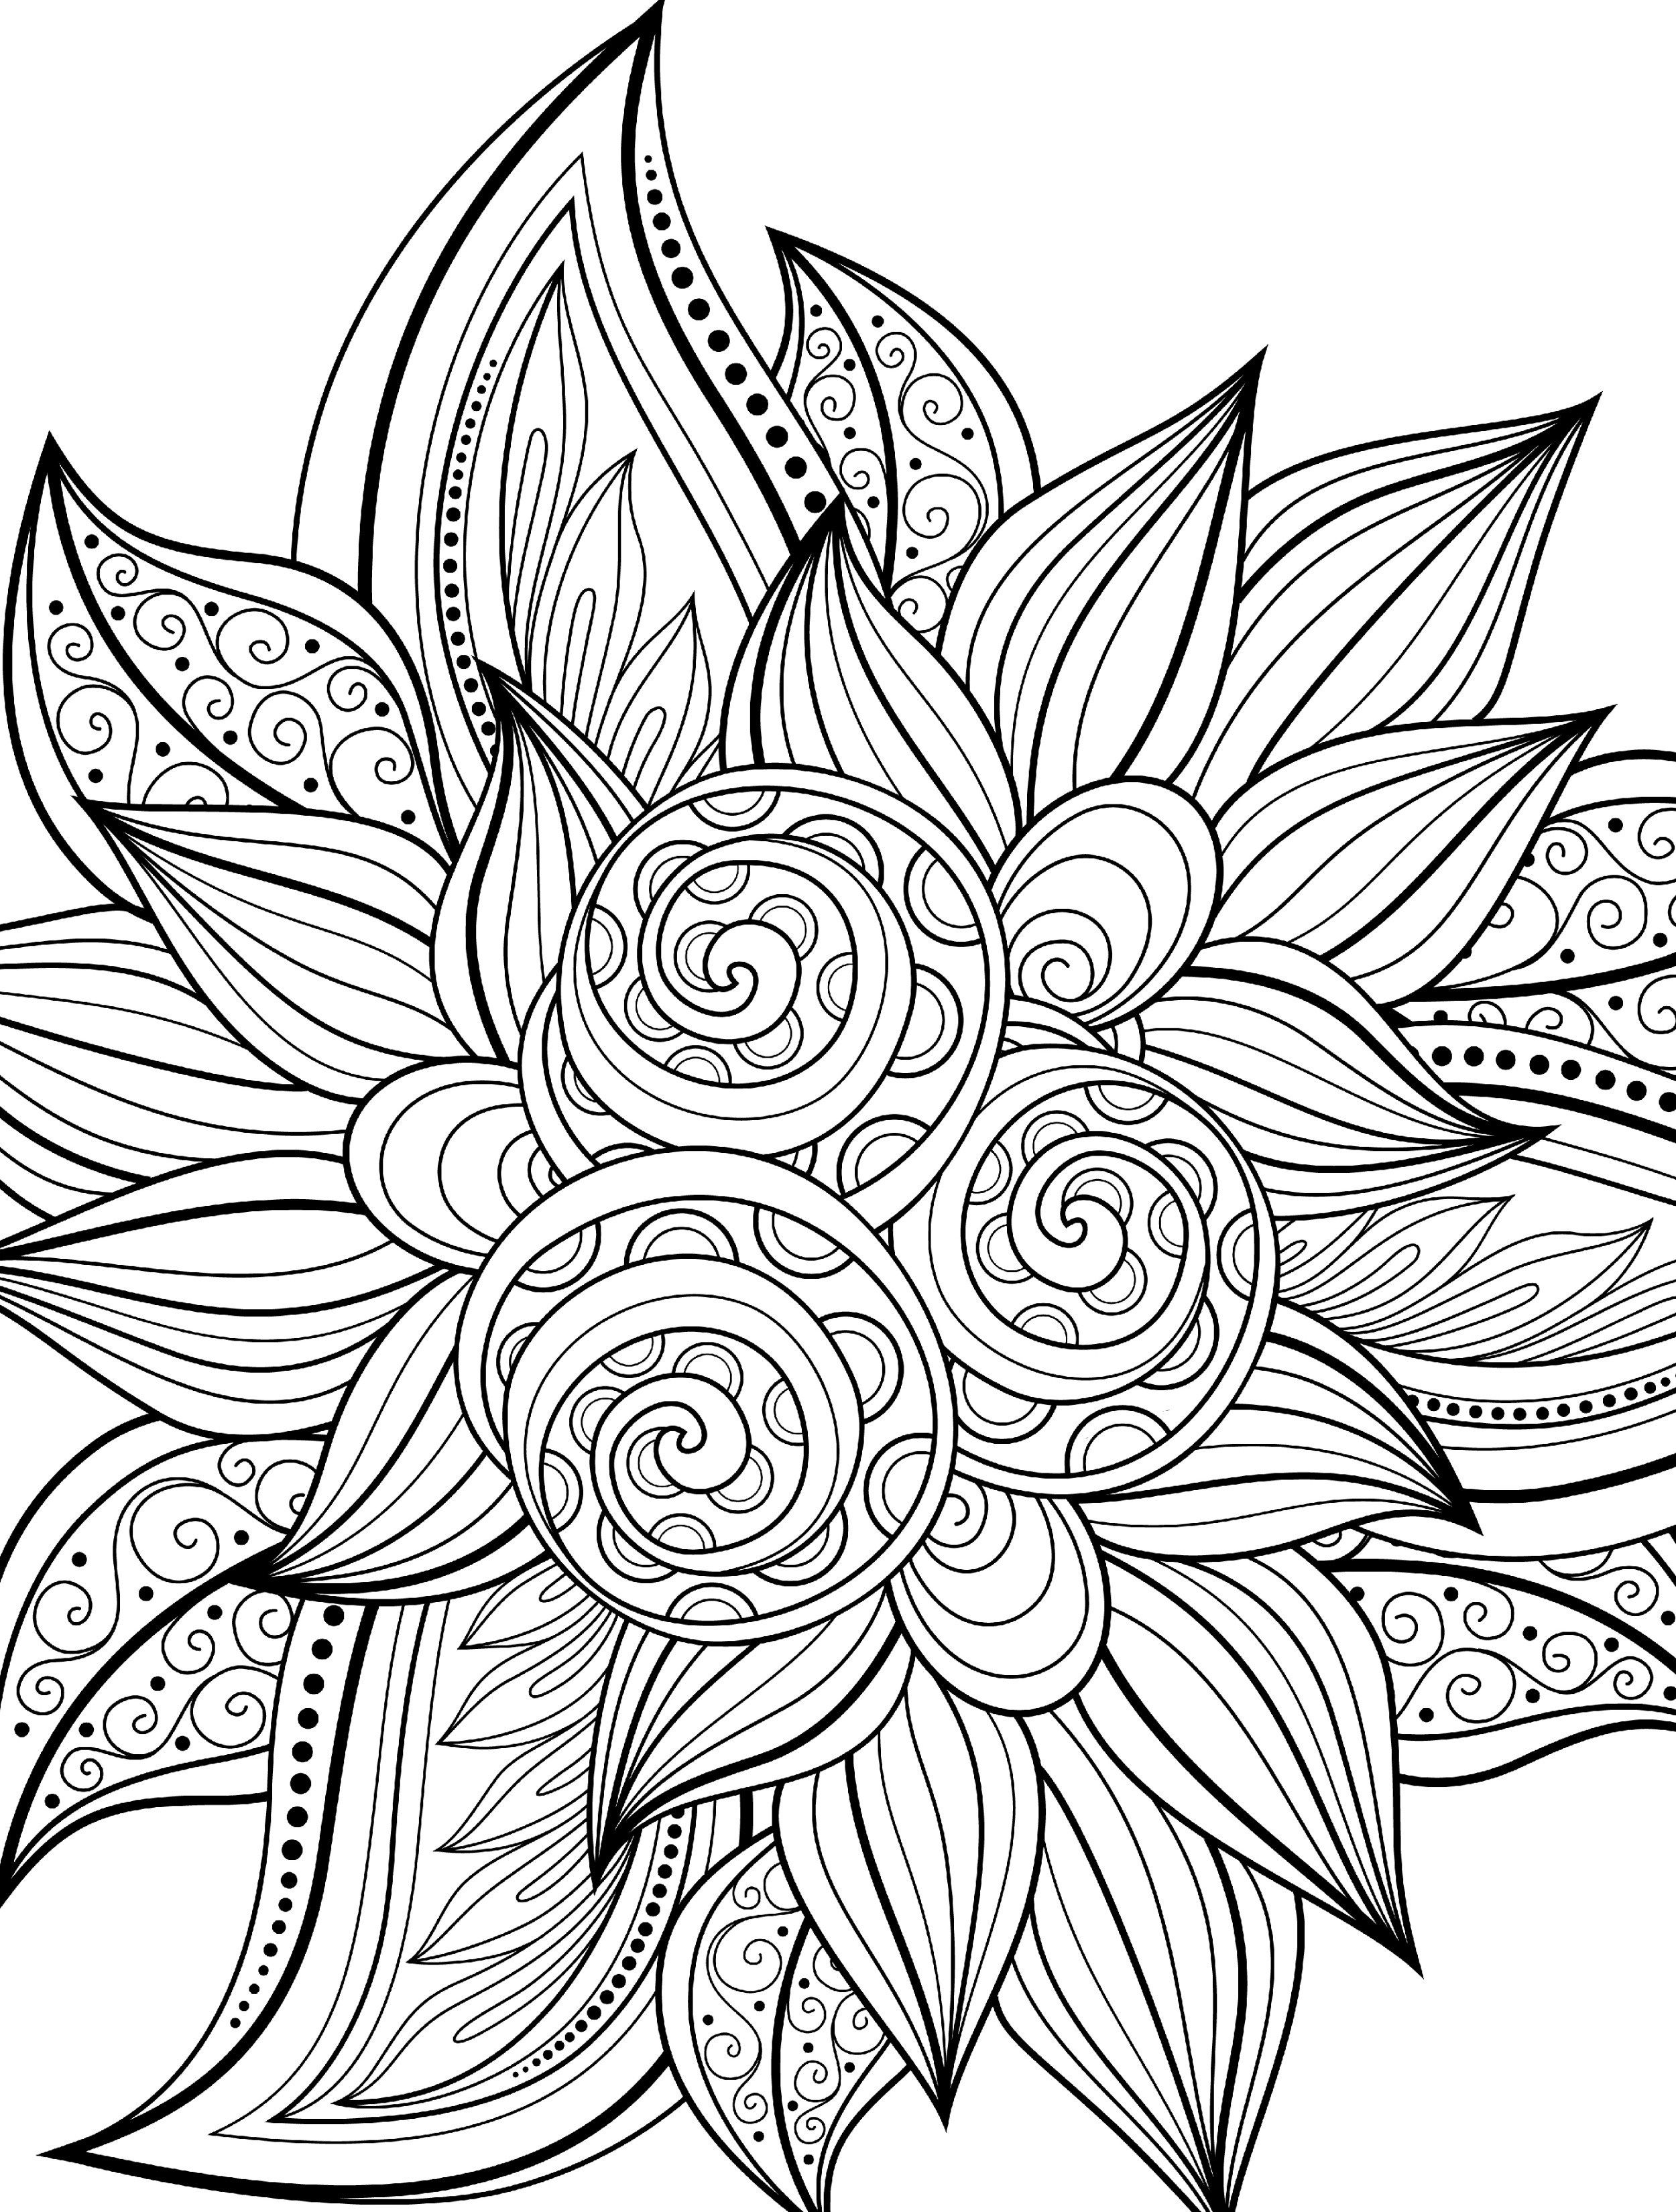 Printable coloring books adults - 10 Free Printable Holiday Adult Coloring Pages